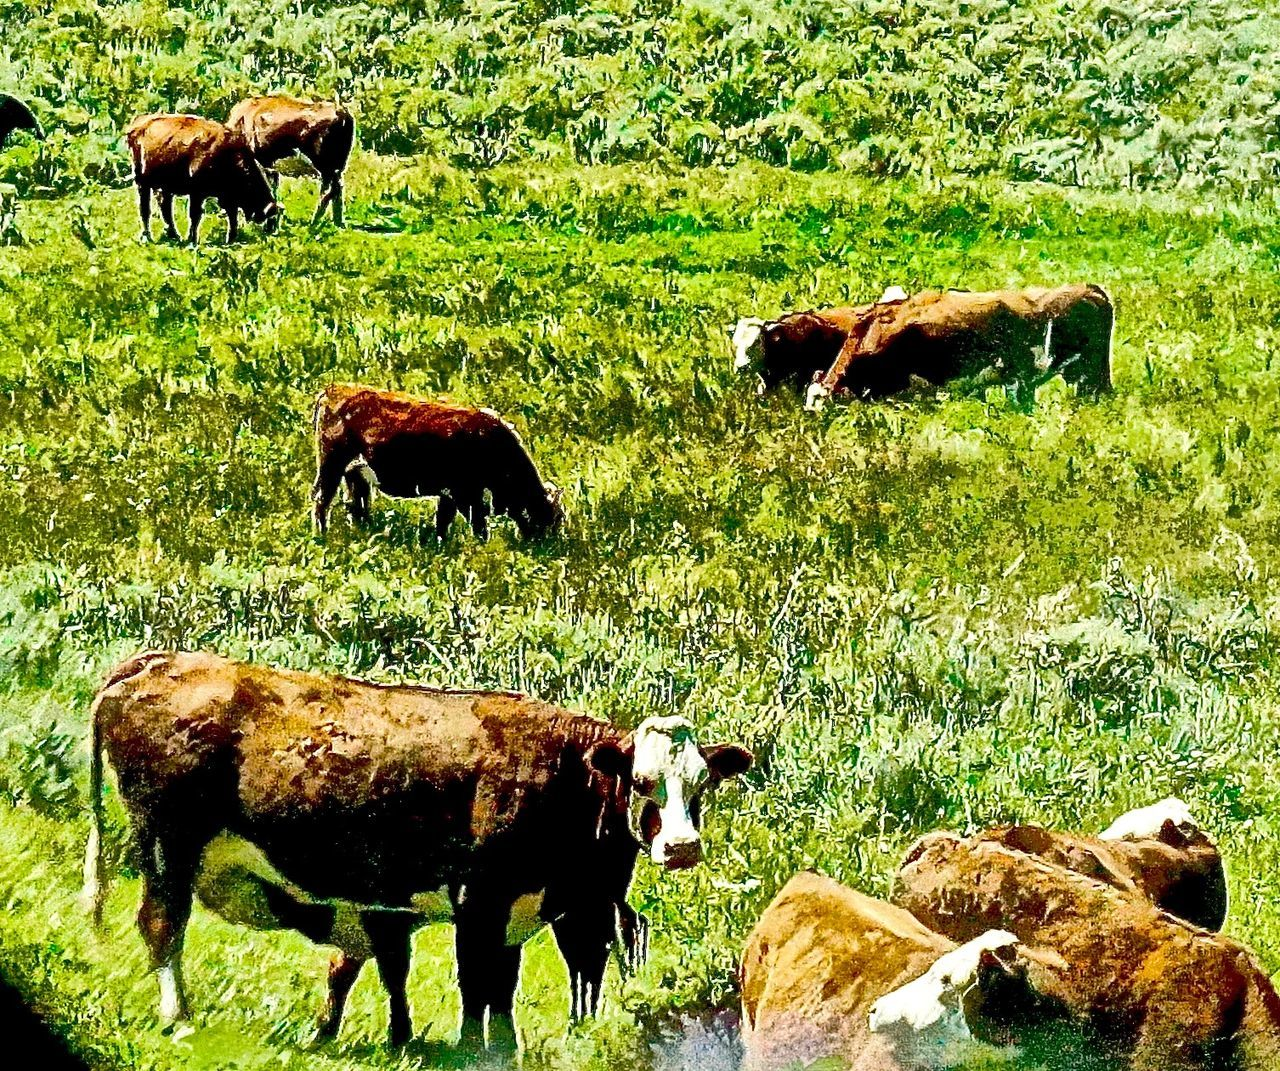 Animal Family Animal Themes Cattle Cattle Ranch Cow Cows Cows Grazing Cows In A Field Cows In The Feilds Cows Of Eyeem Cows!!! Cows🐮 Day Domestic Animals Field Grass Grazing Herbivorous Livestock Mammal Nature No People Outdoors Steamboat Springs Sunlight